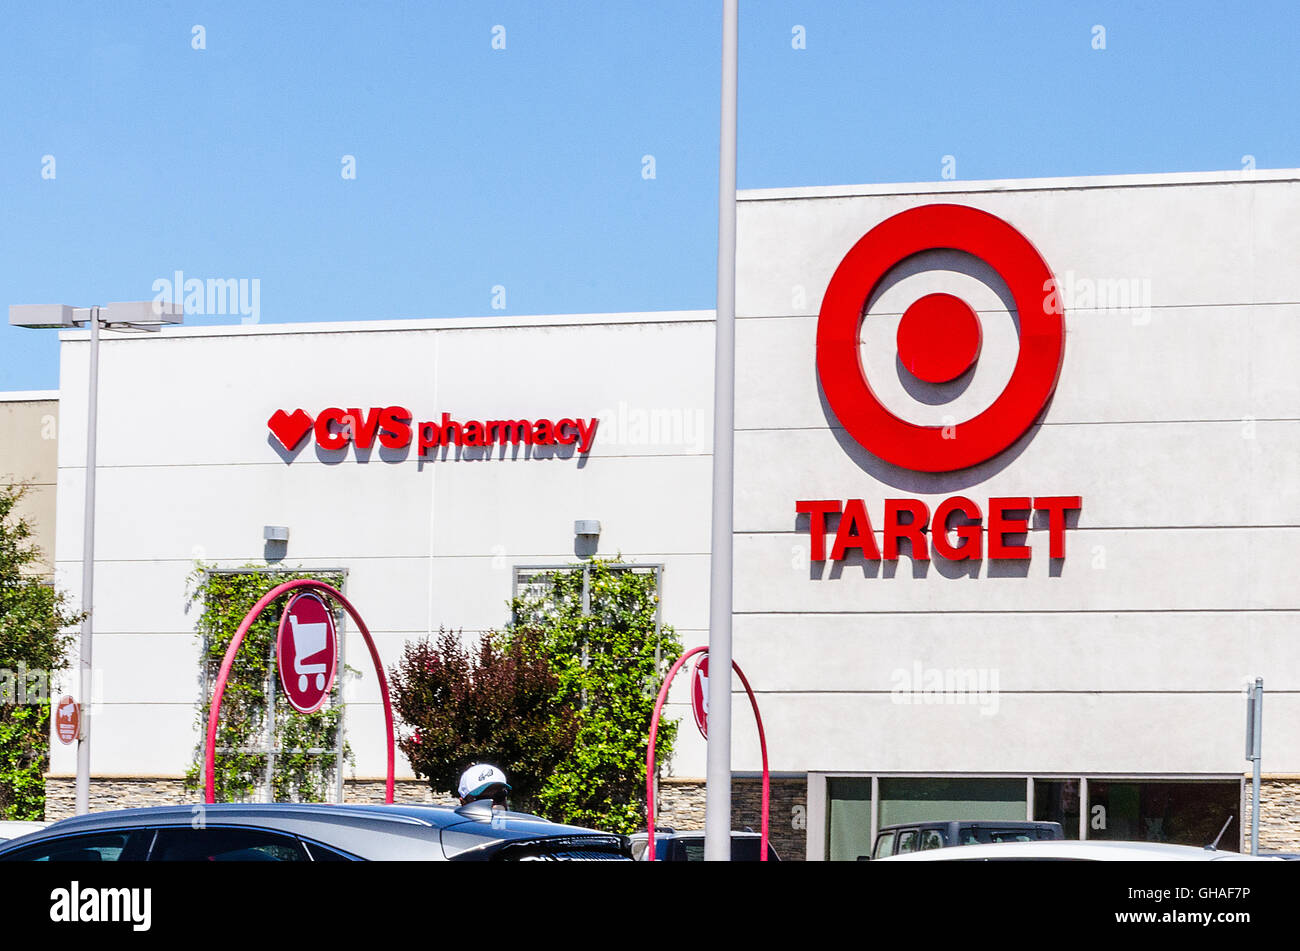 Cvs Store Stock Photos & Cvs Store Stock Images - Alamy